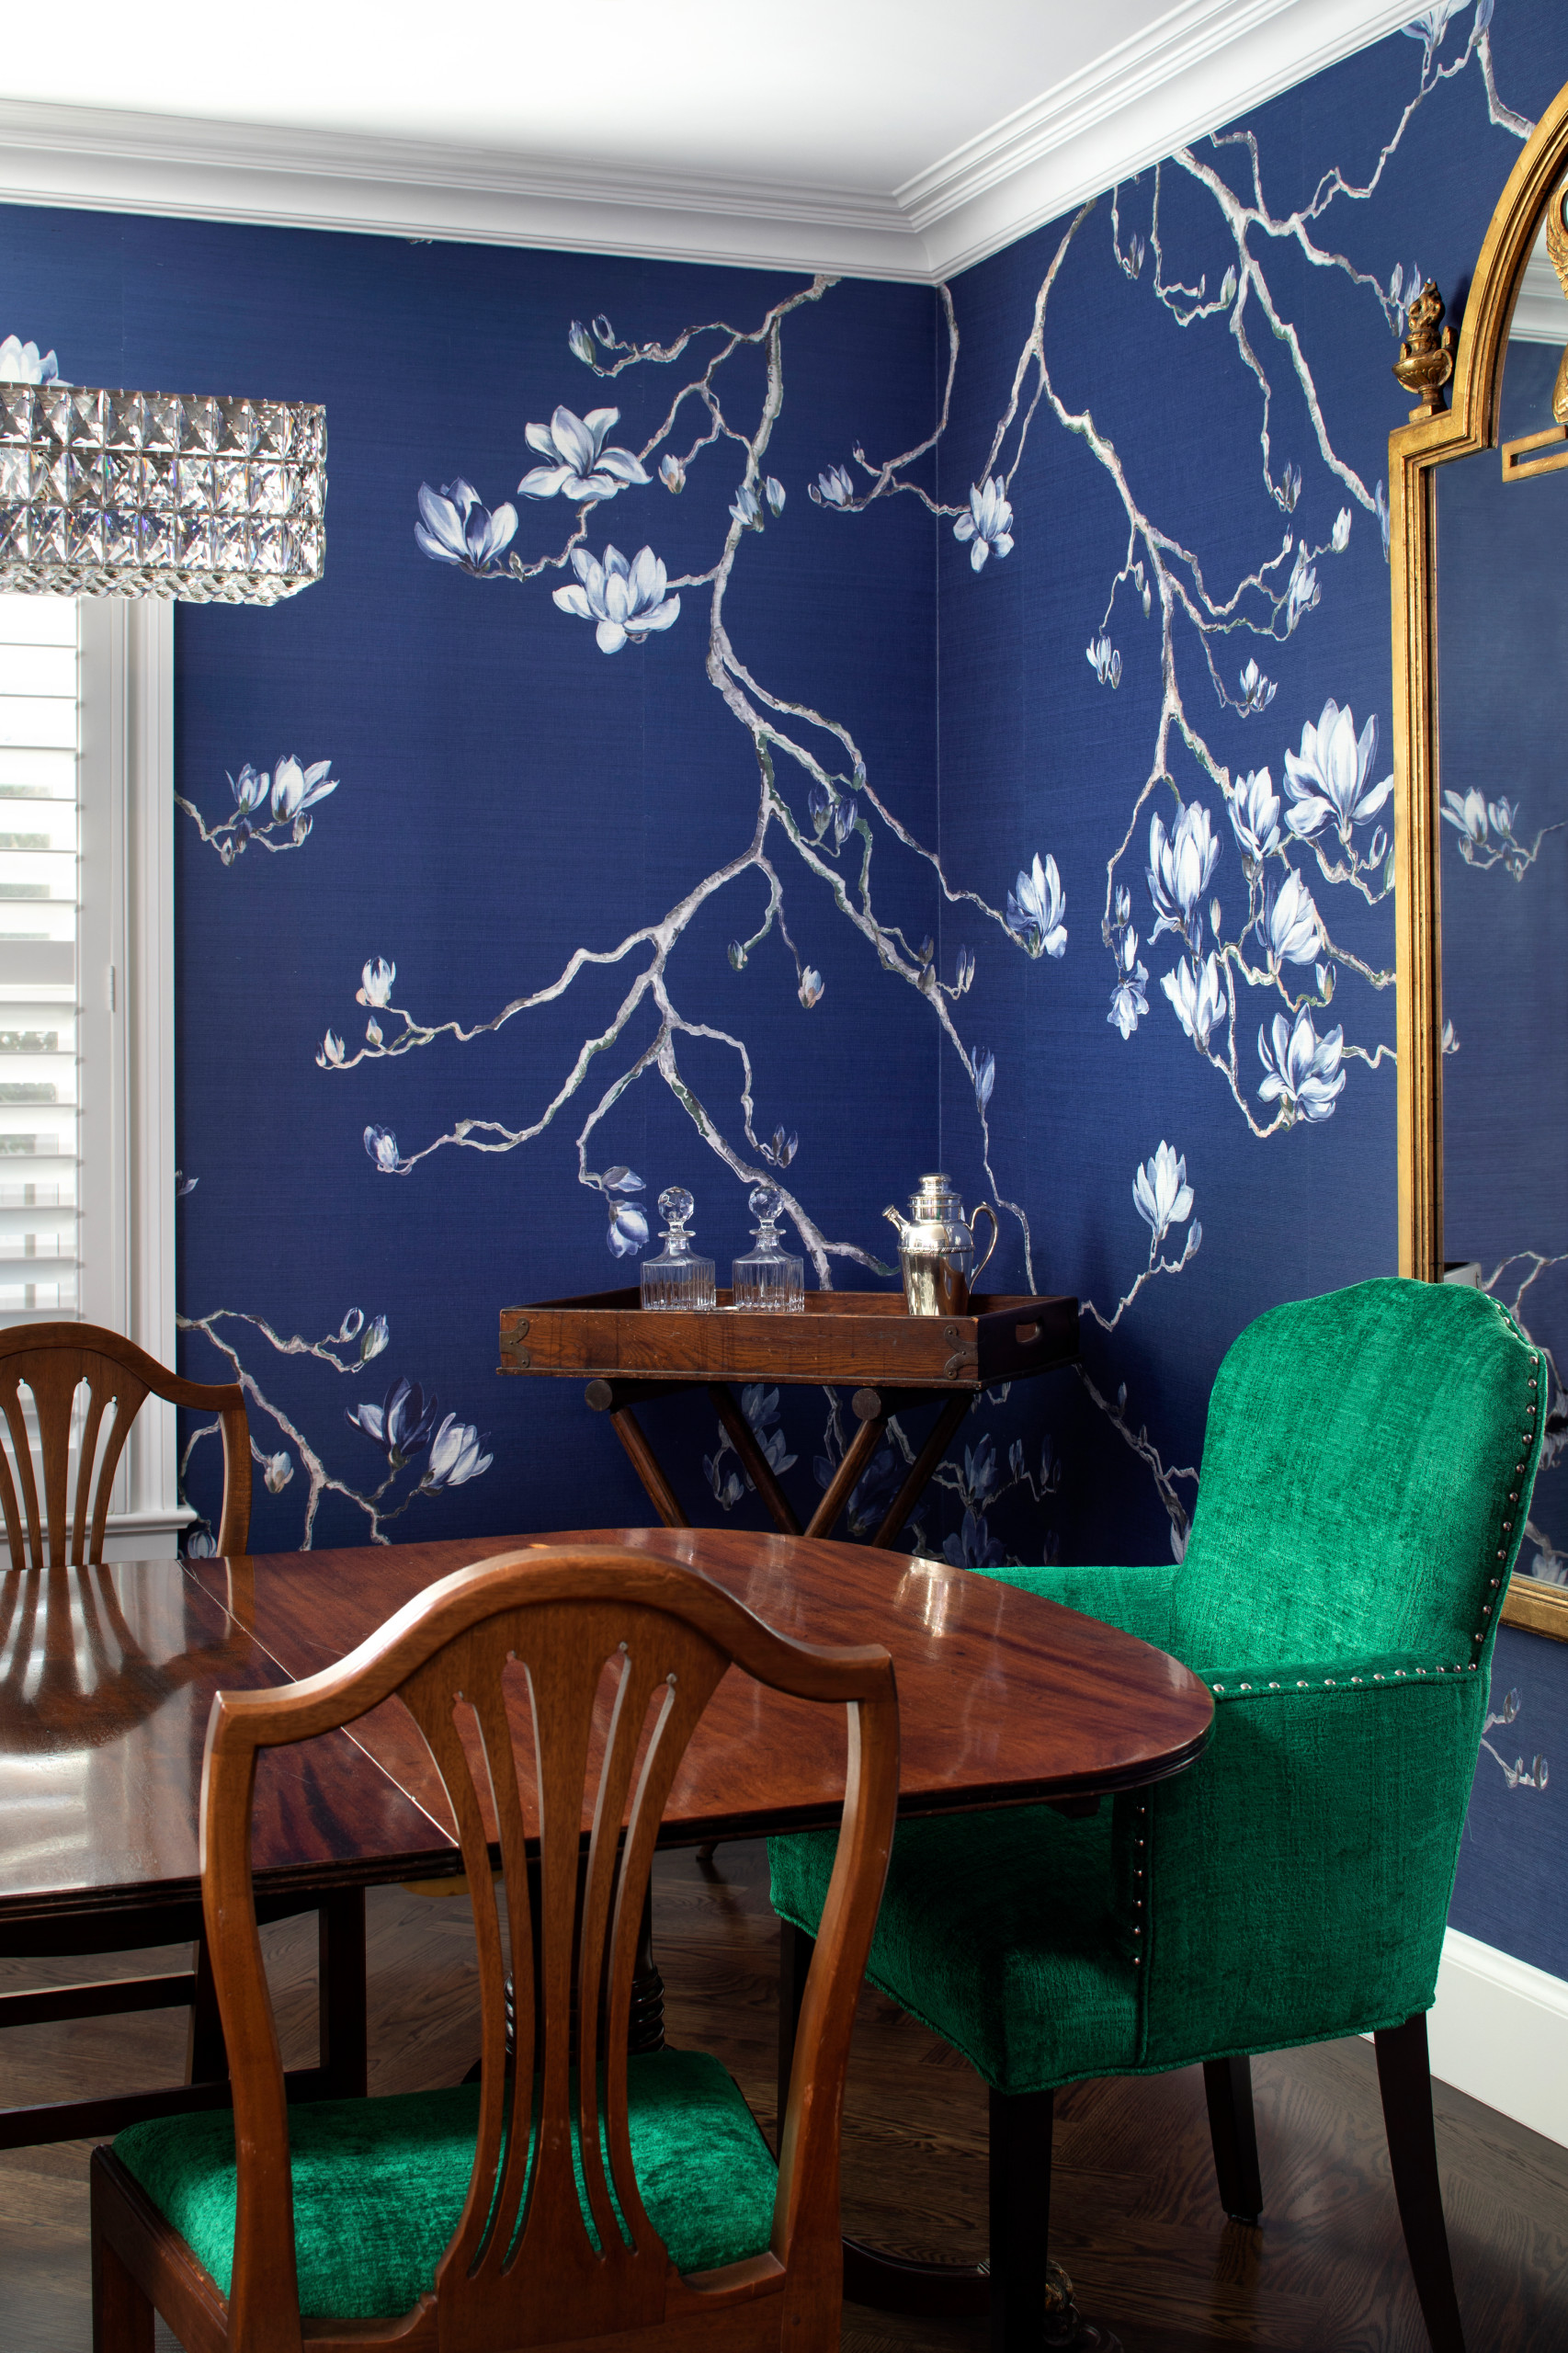 Colonial dining - Chinoiserie chic